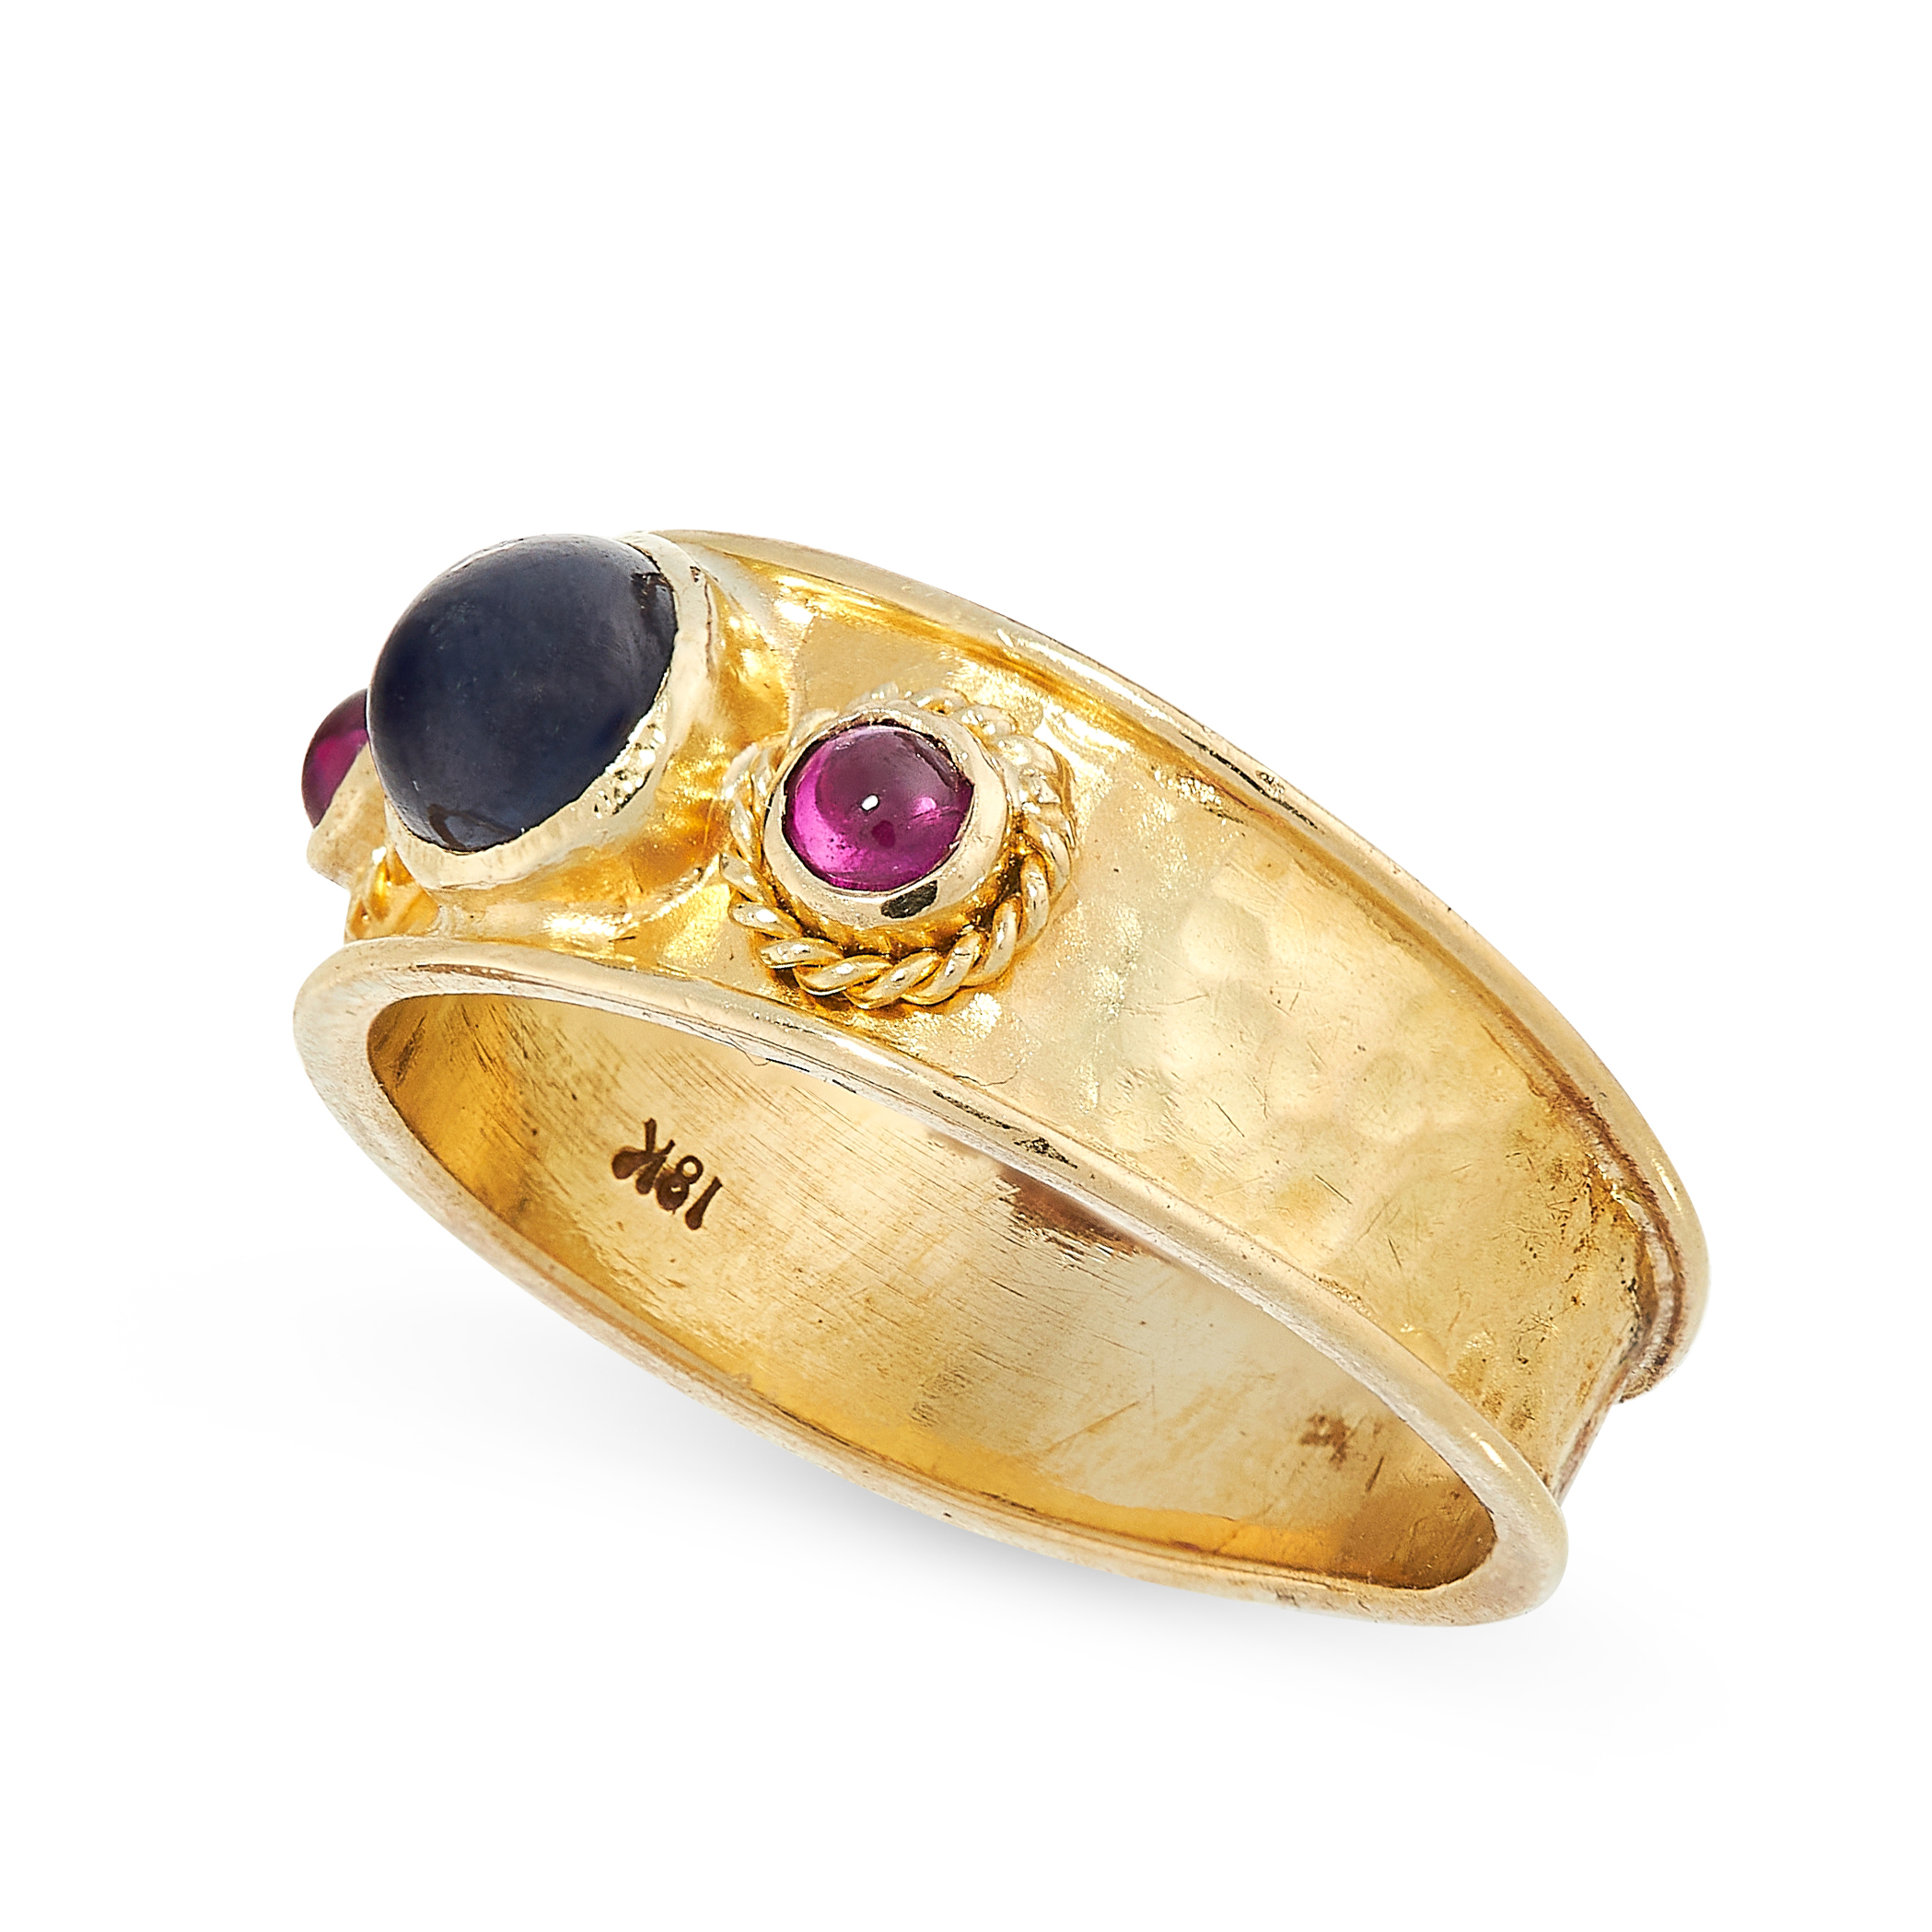 SAPPHIRE AND RUBY RING in 18ct yellow gold, the hammered gold band is set with a cabochon sapphire - Image 2 of 2